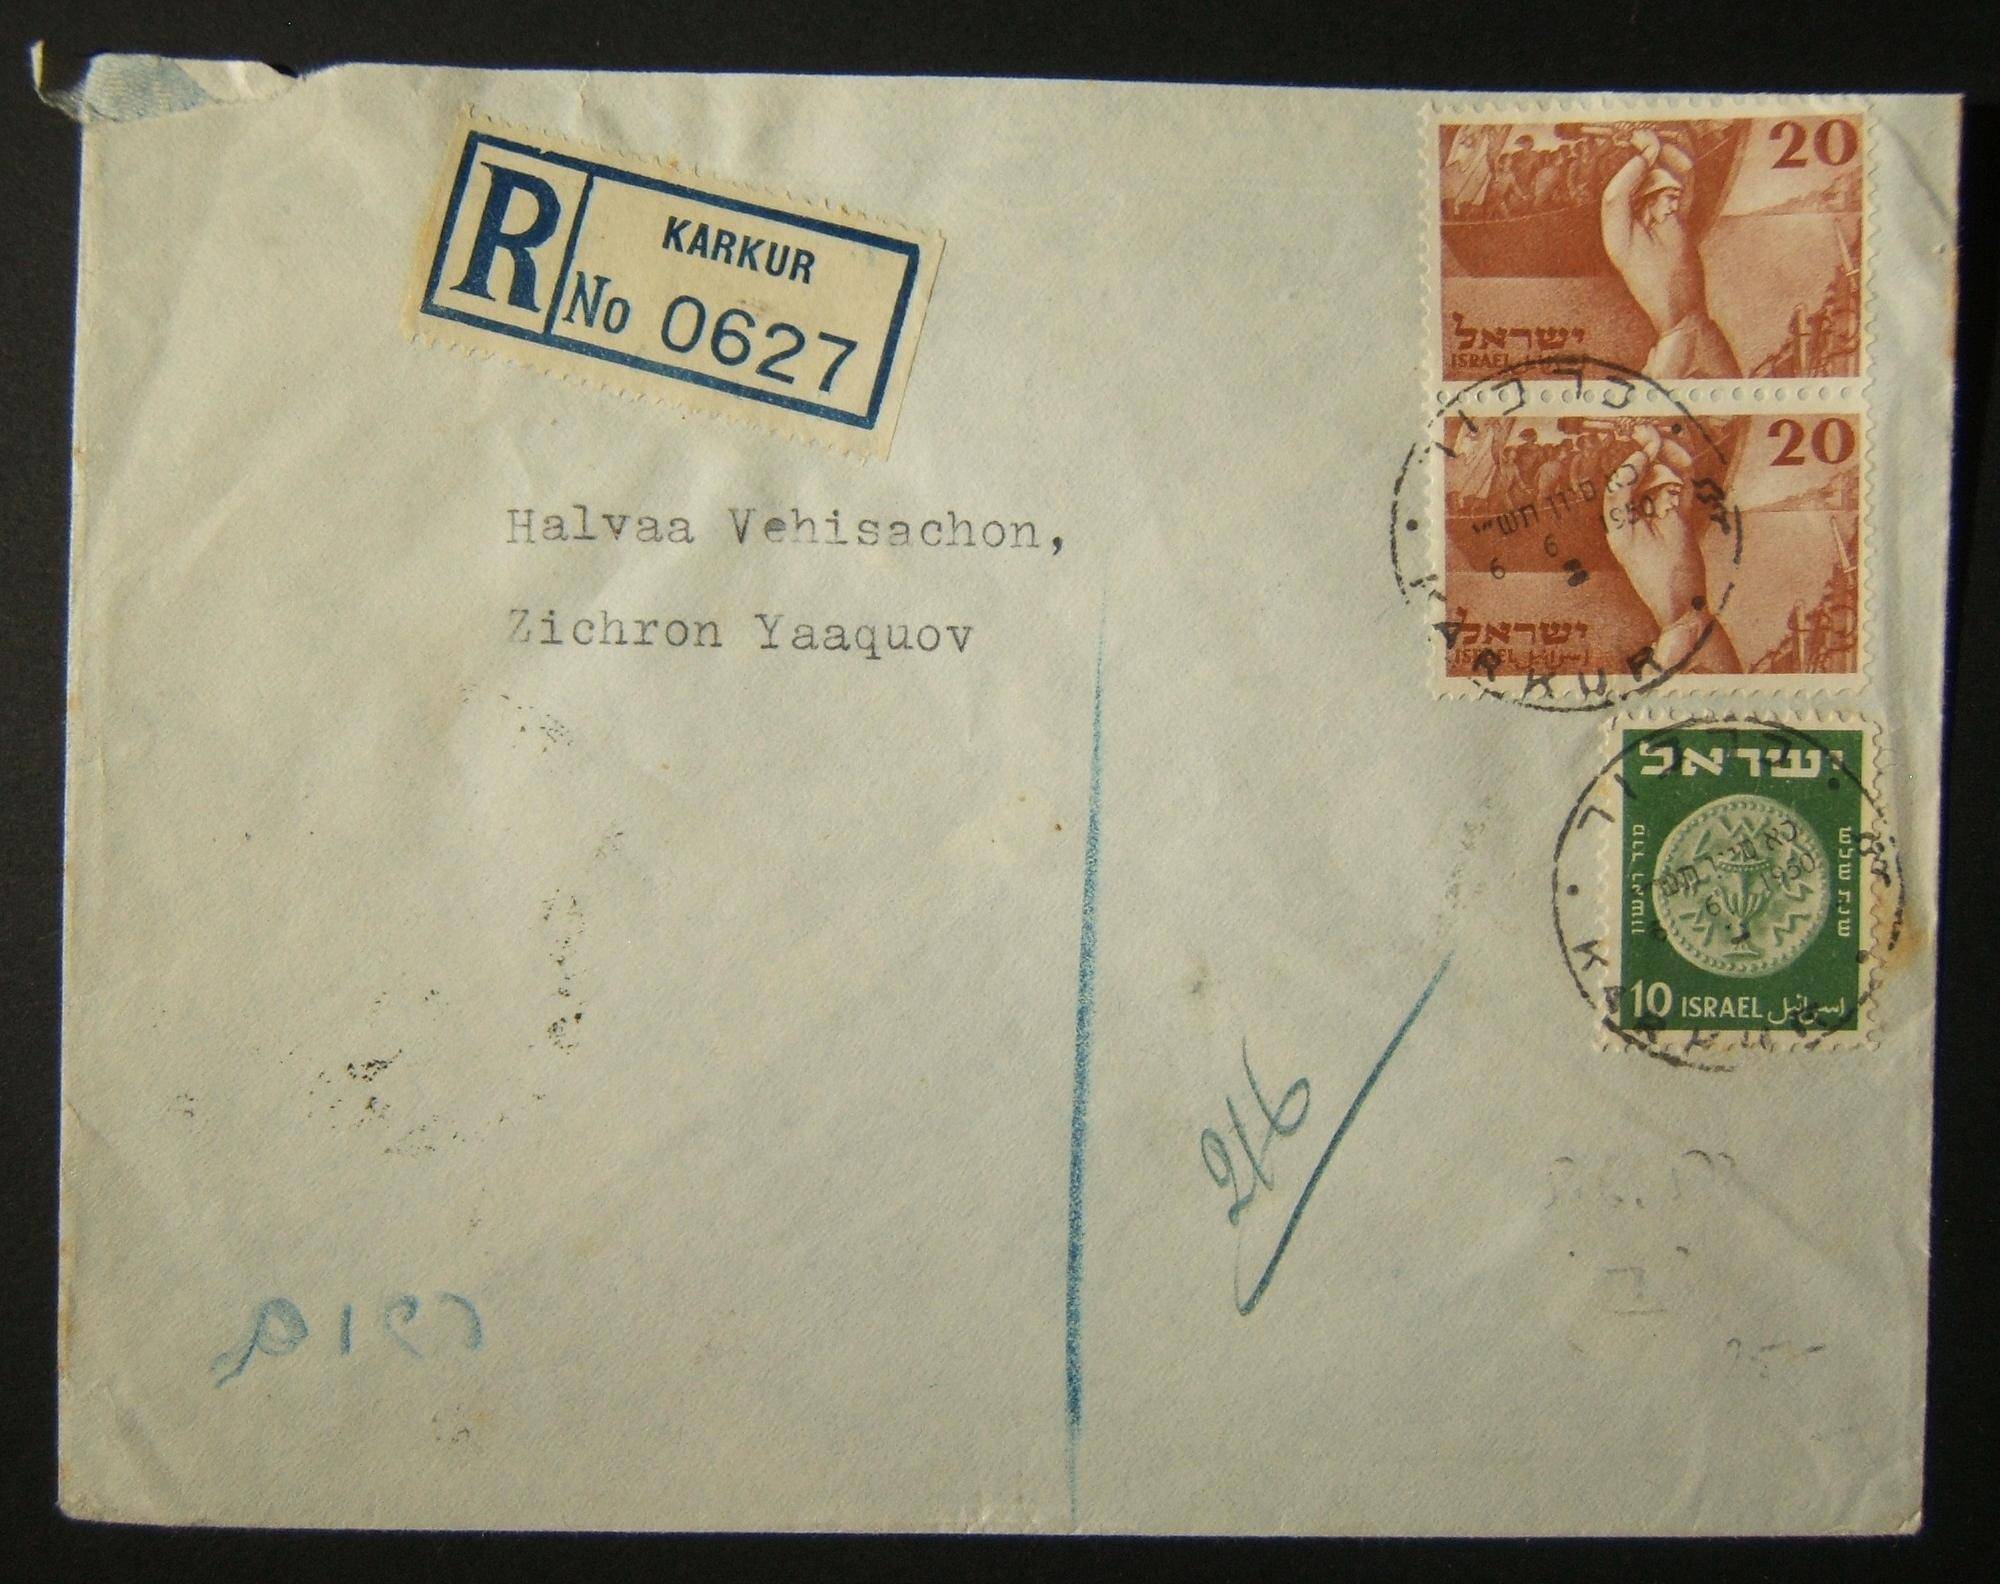 1950 Independence / PO's, rates & routes: 6-6-1950 registered commercial cover ex KARKUR to ZIKHRON YAAQOB franked 50pr at the DO-2 period domestic rate (15pr letter + 10pr additio